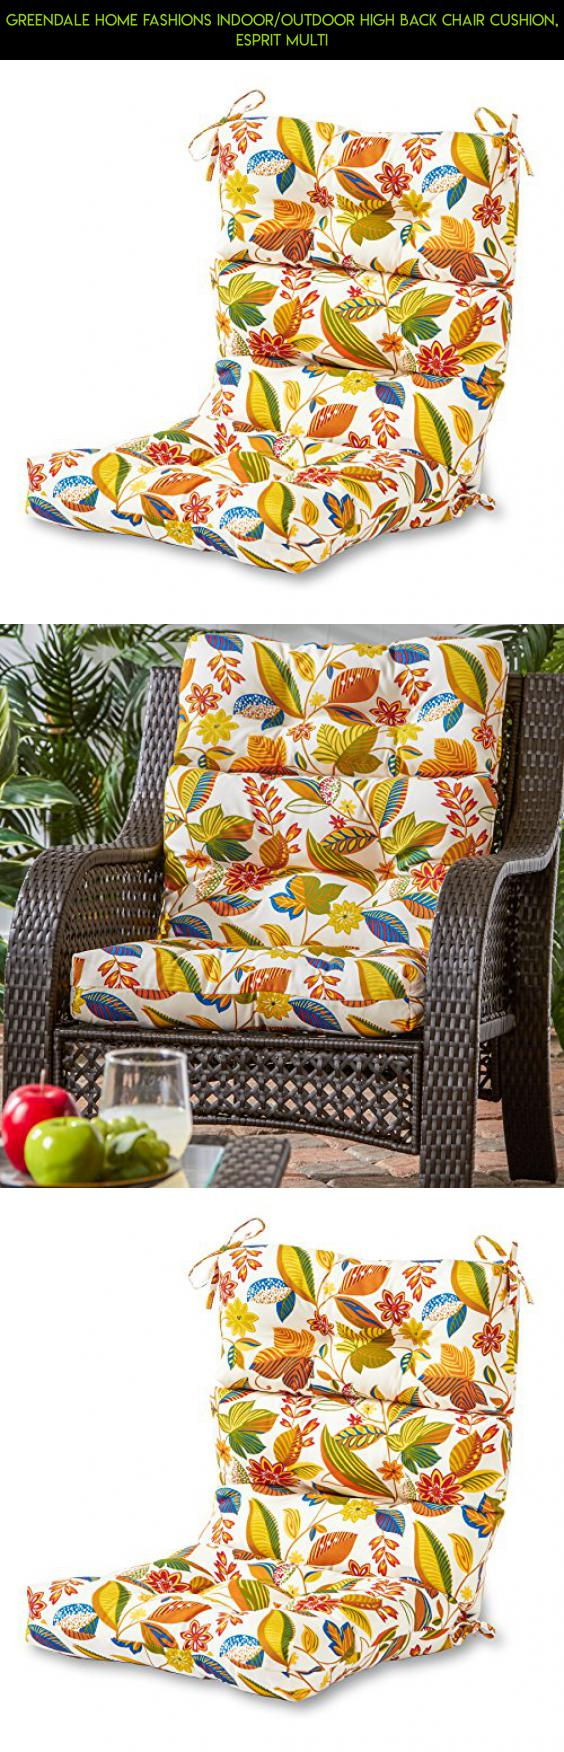 Outdoor high back chair cushions - Greendale Home Fashions Indoor Outdoor High Back Chair Cushion Esprit Multi Parts